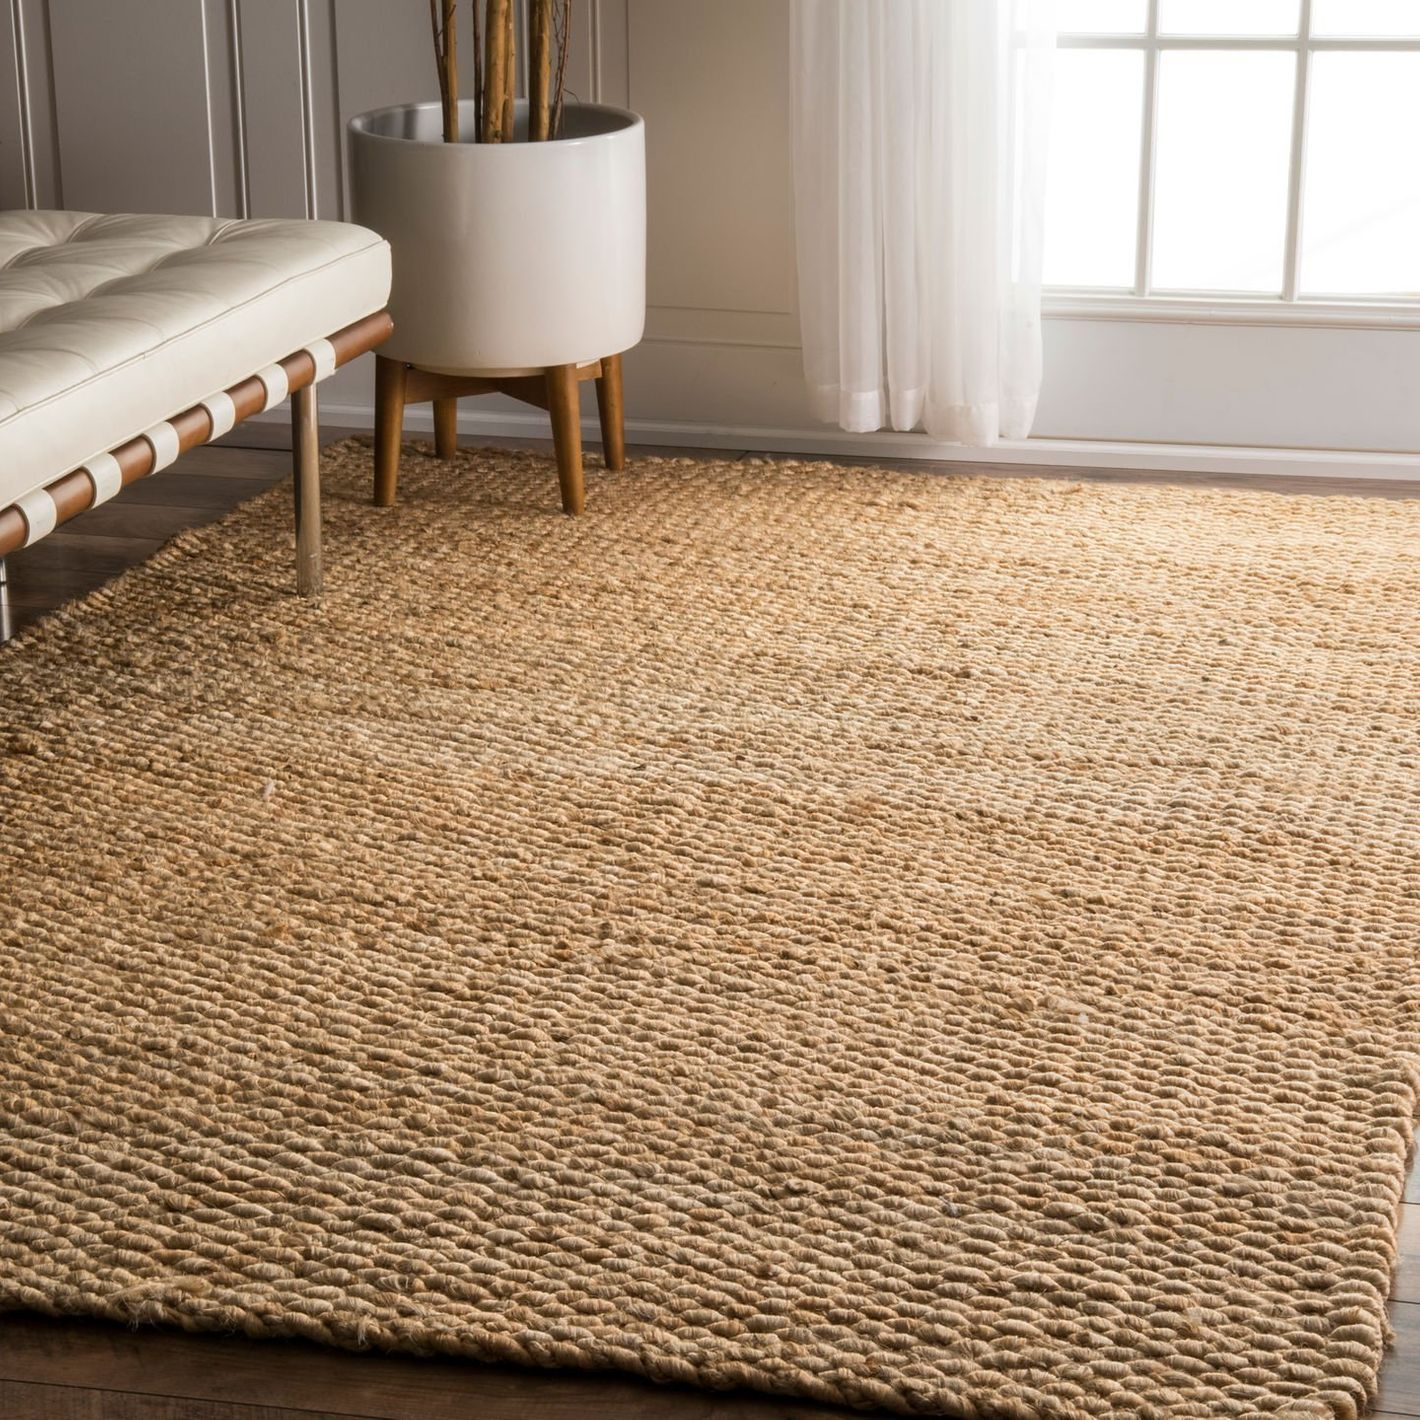 nuLOOM Natura Collection Hailey Jute Natural Fibers Solid and Striped Hand Made Area Rug